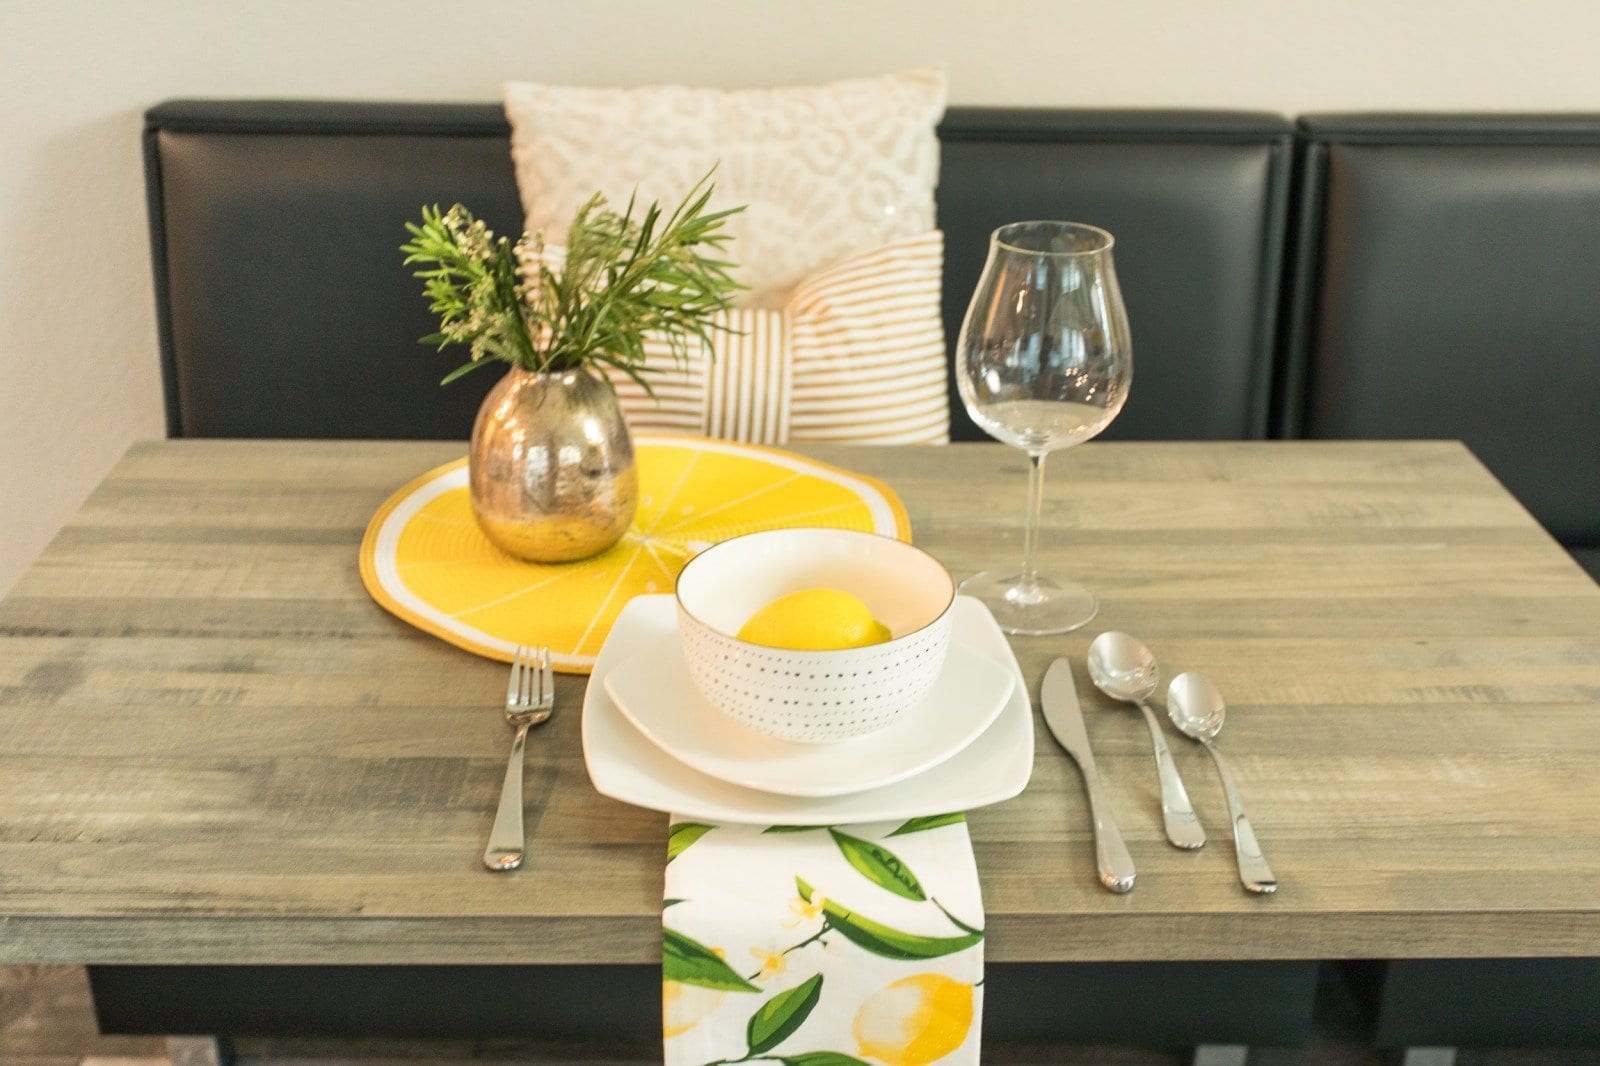 This tablescape checklist will give you tablescapes ideas for how to create dinner party table settings | neverskipbrunch.com #neverskipbrunch #decor